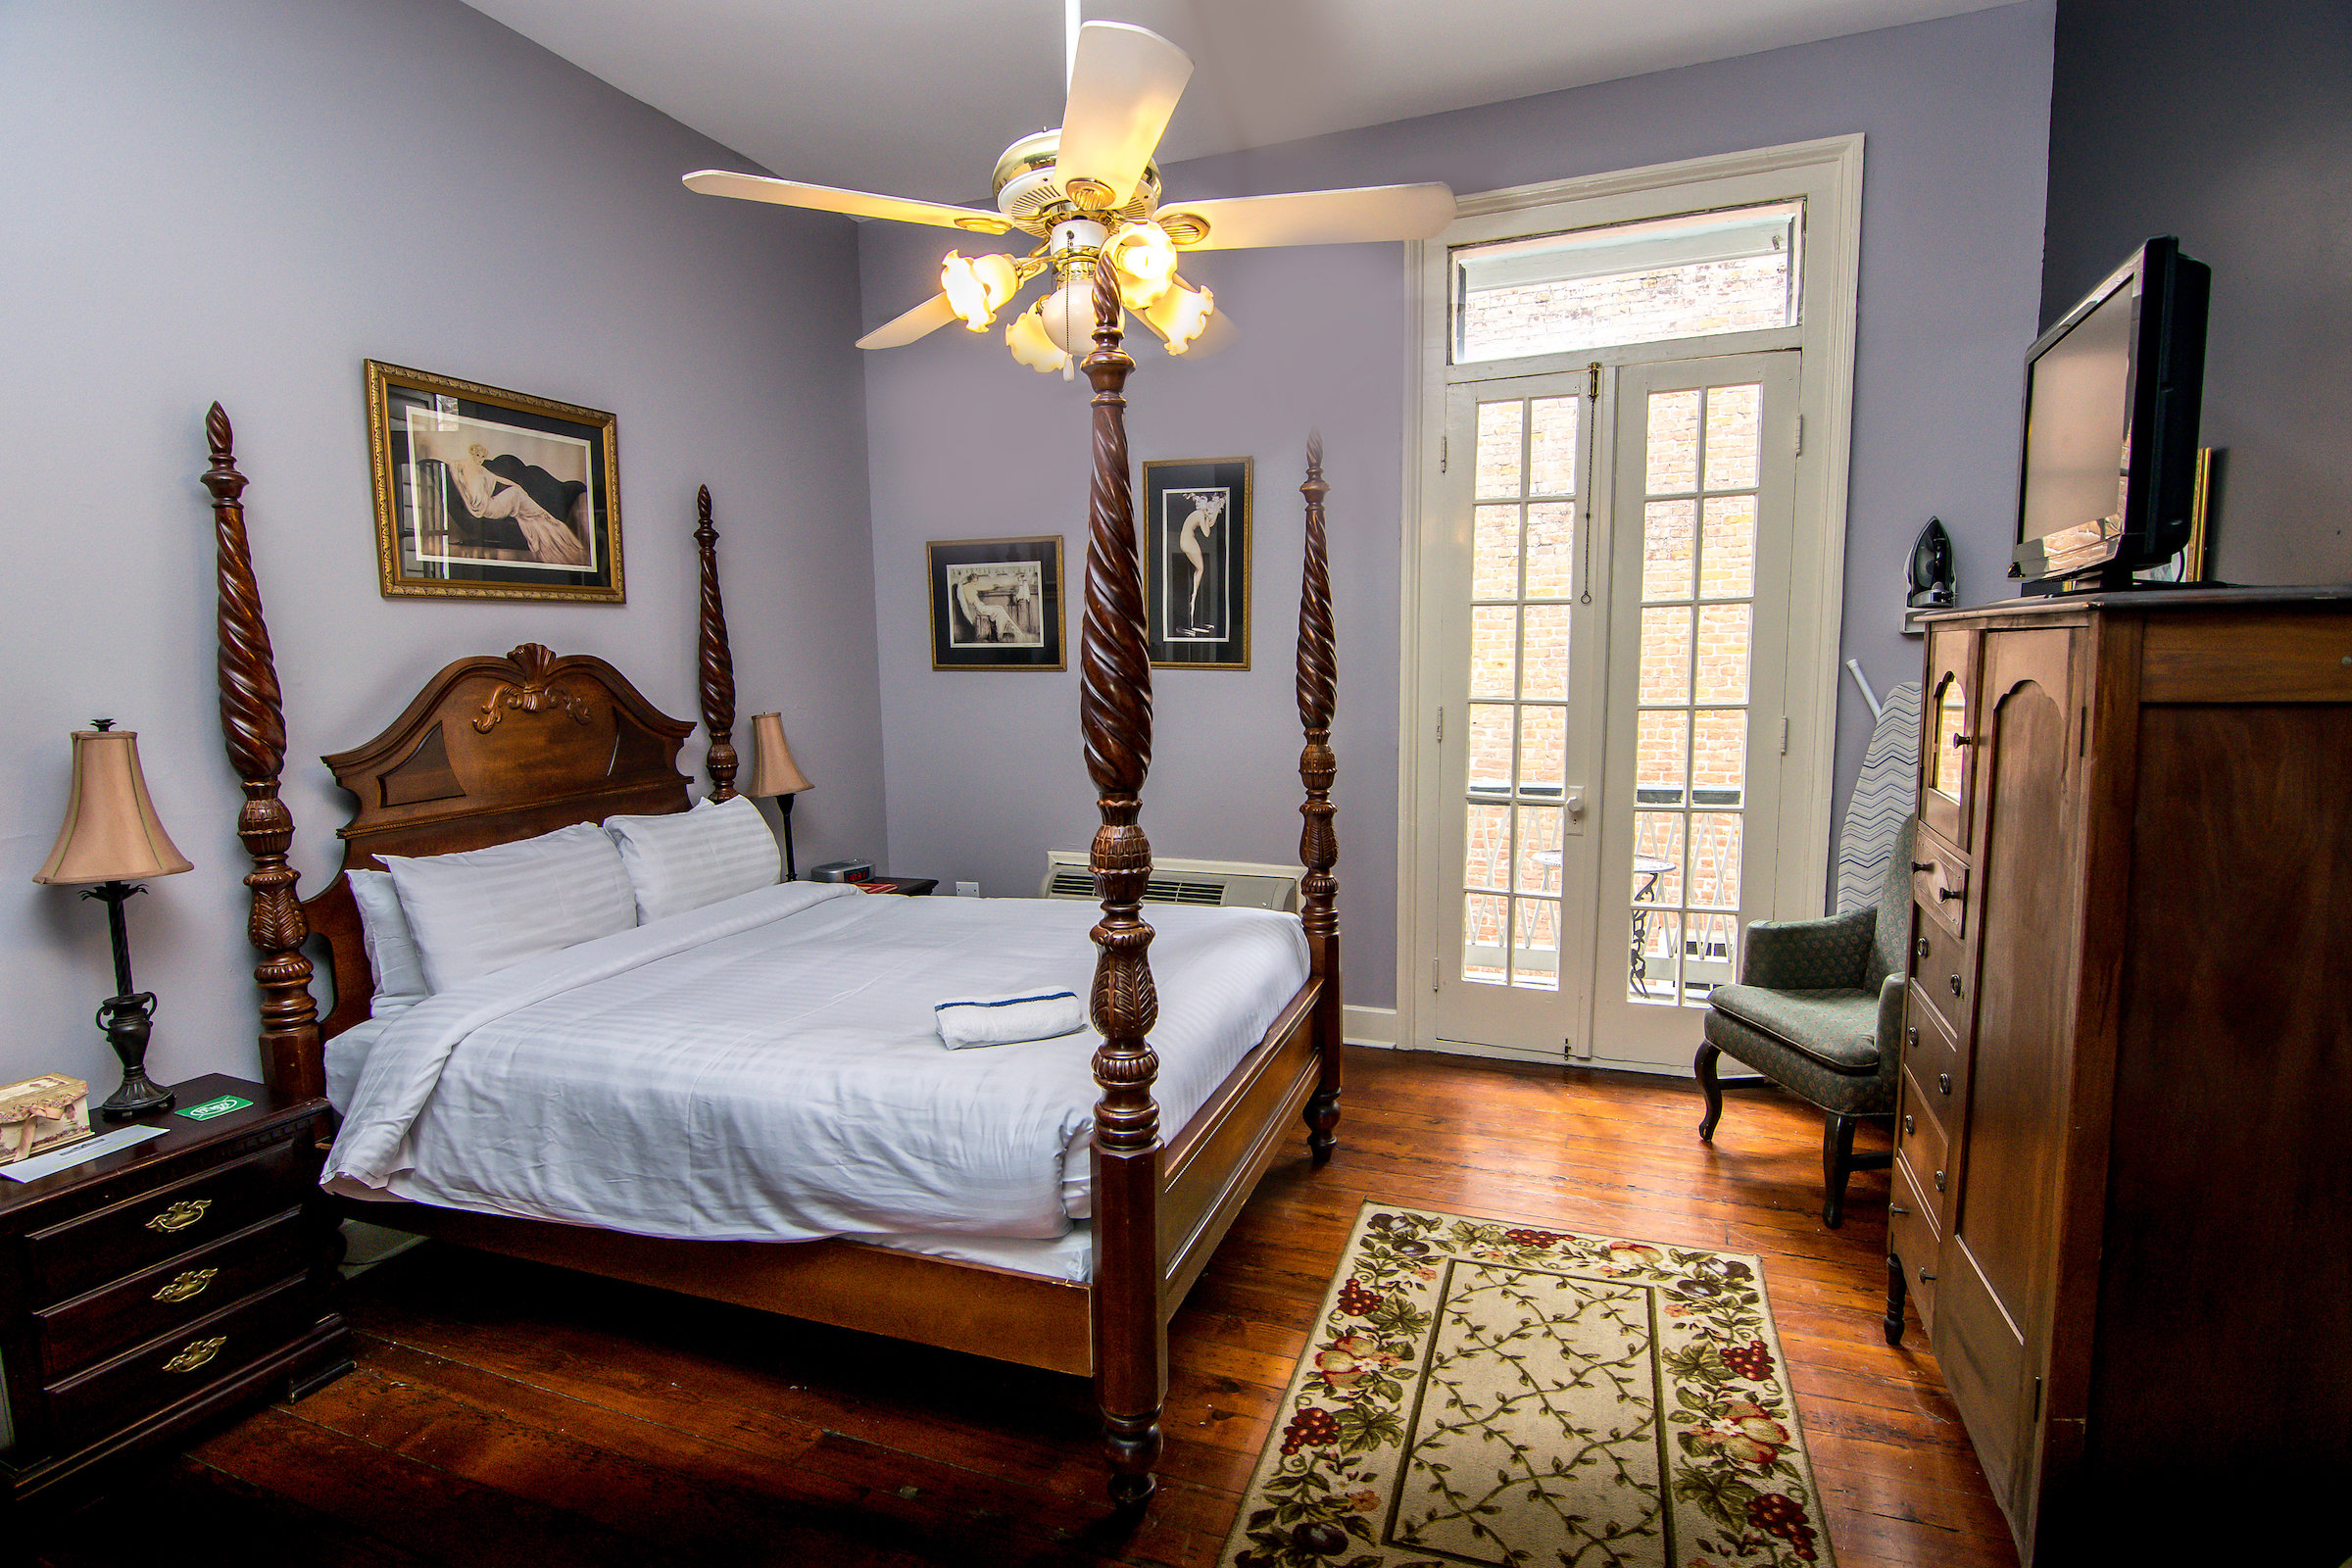 Superior Queen  MAKE YOUR STAY EVEN BETTERFROM $179 A NIGHT >    View Details